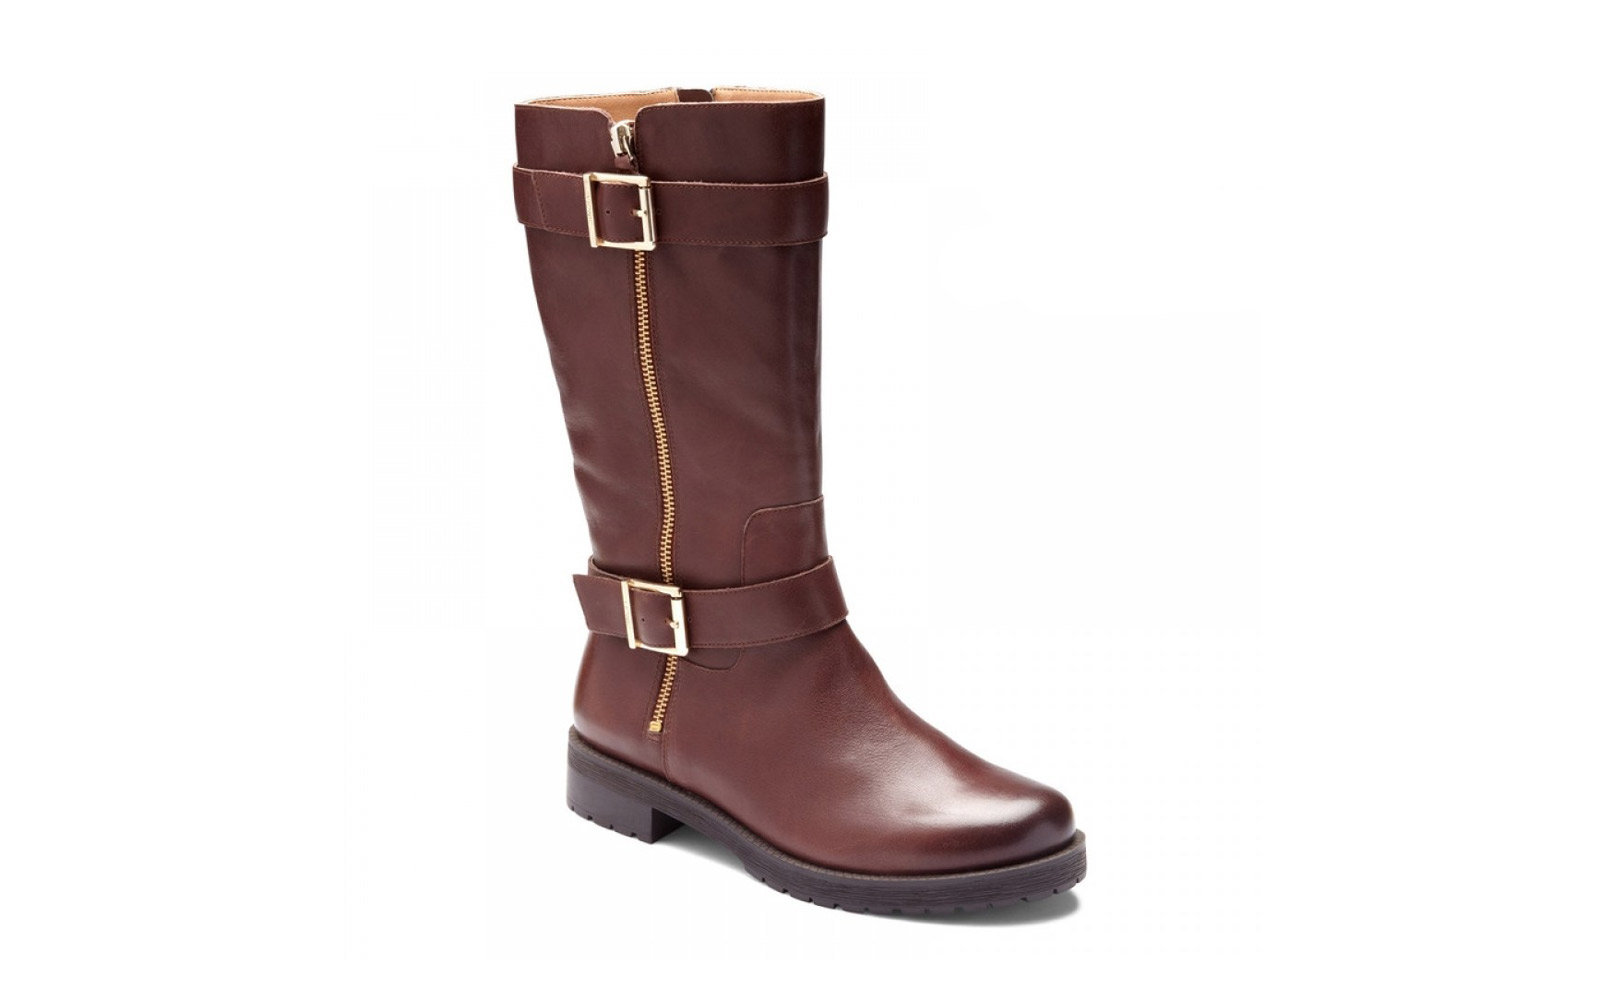 Winter boots on the platform - style and comfort